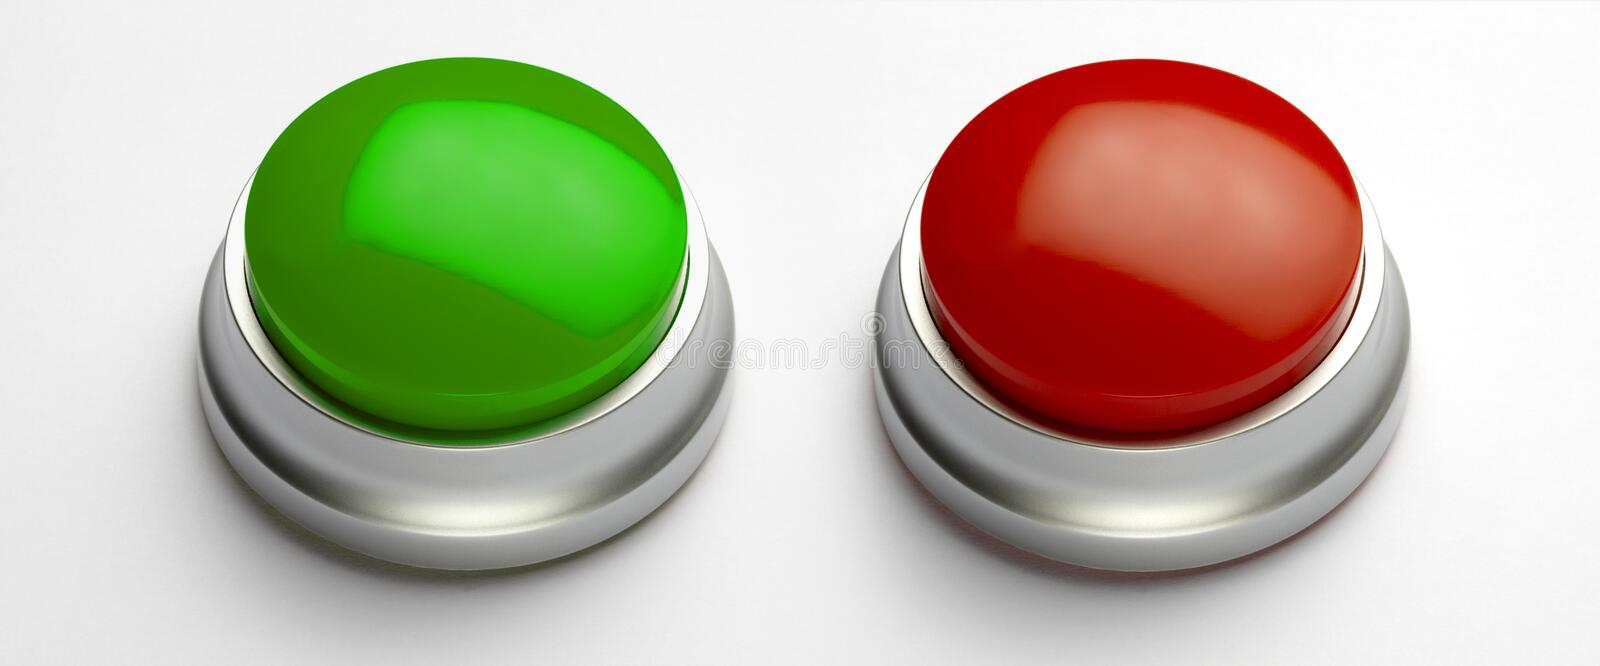 Blank green and red buttons stock photography